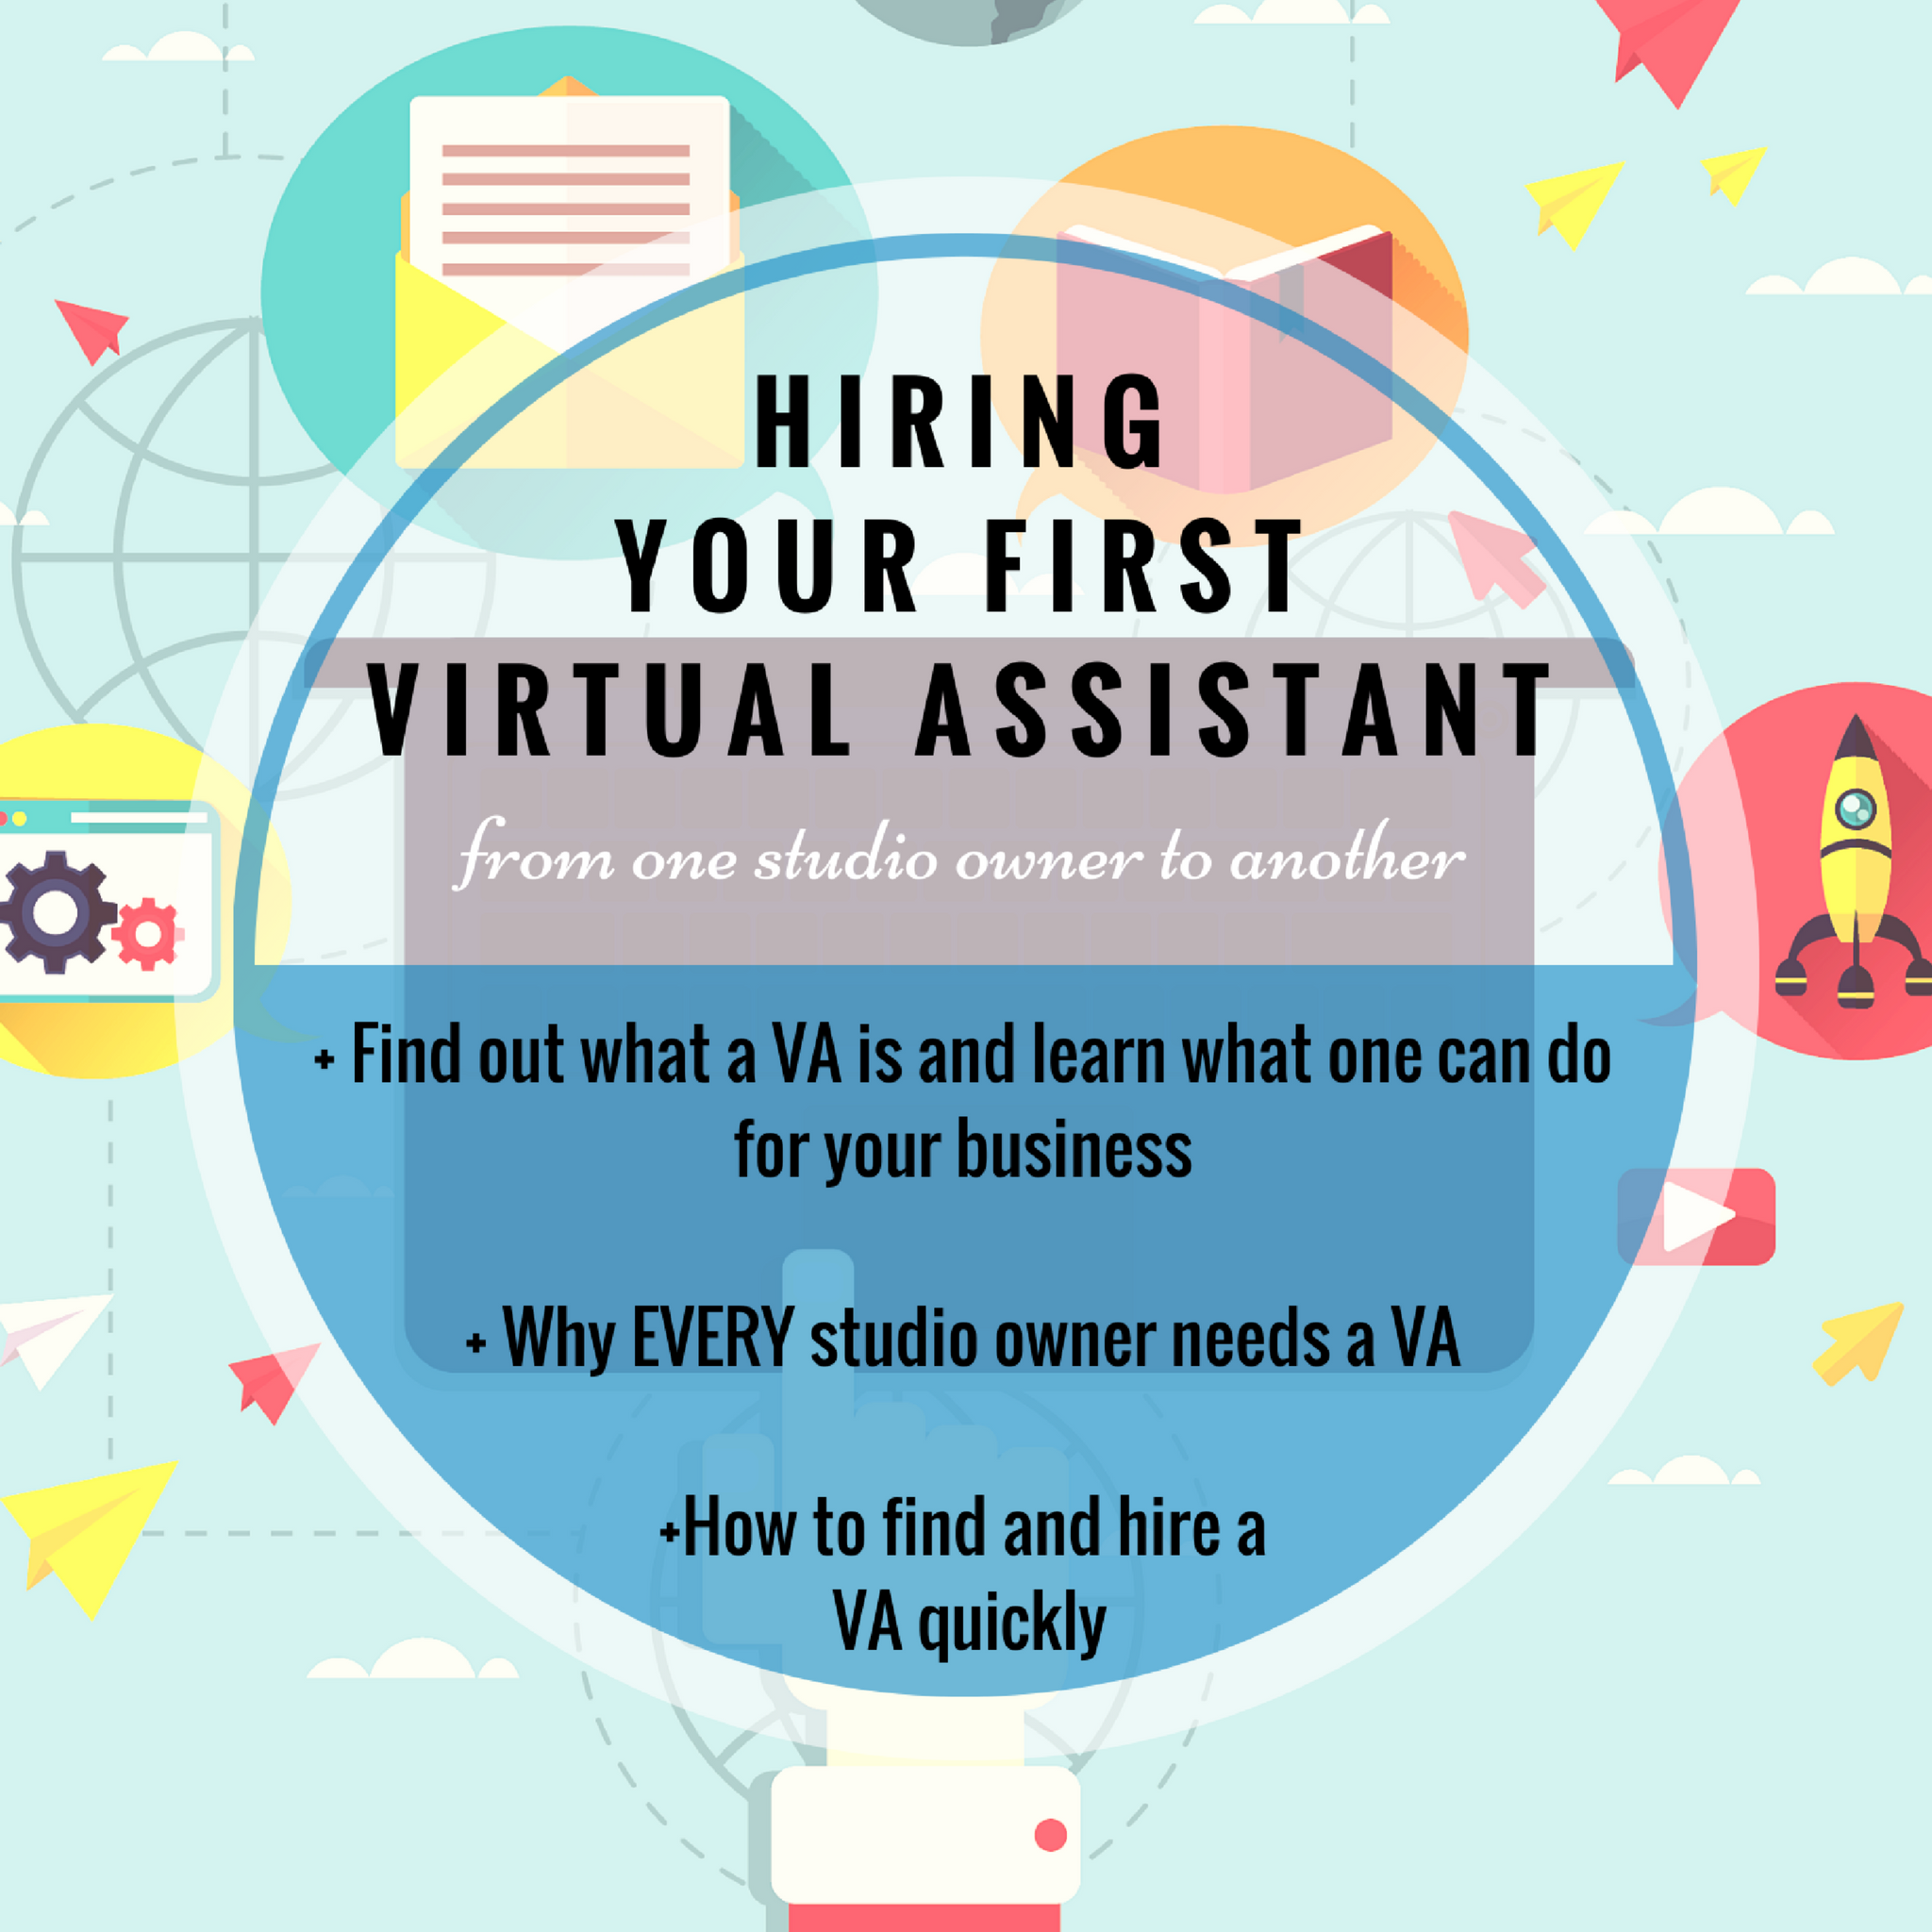 Hiring a Virtual Assistant with Yong Pratt of the Tech Savvy studio Owner